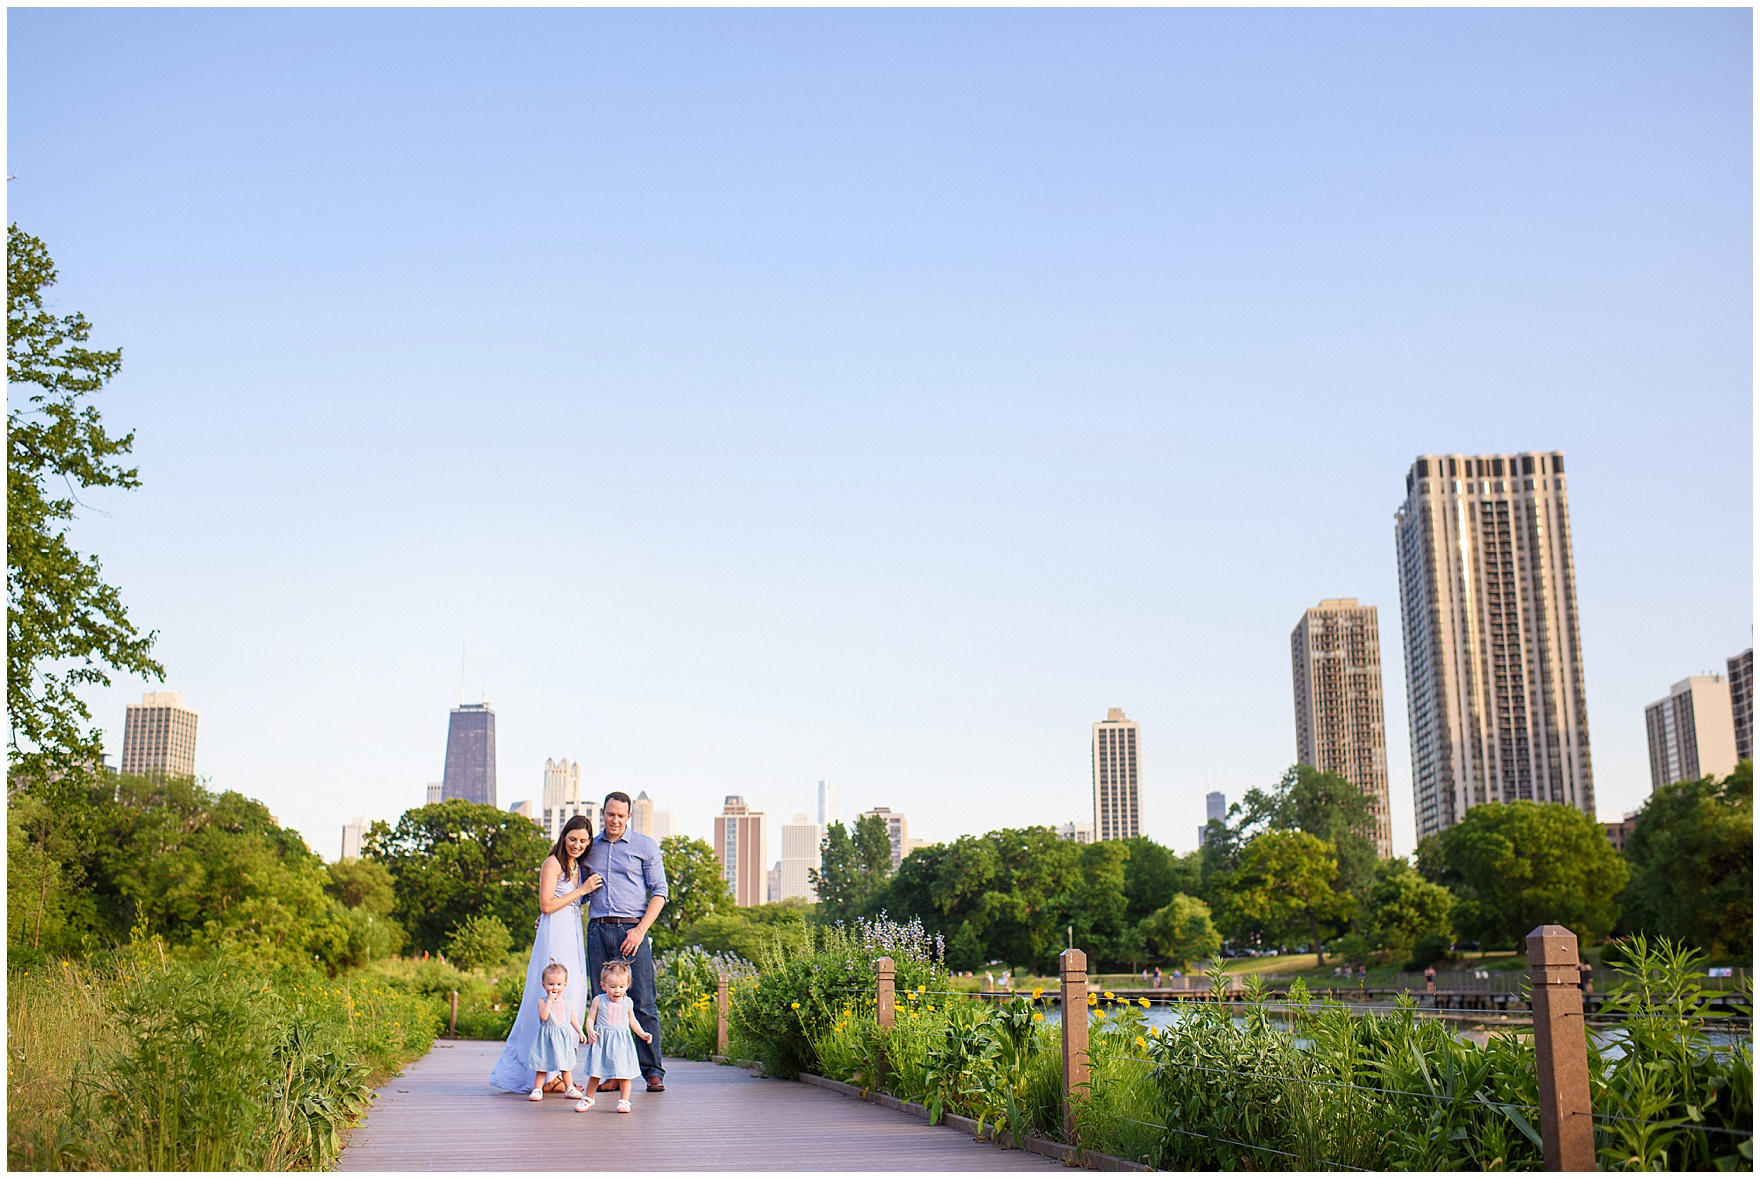 A family walks along the Nature Boardwalk during a Chicago Lincoln Park family photography session.